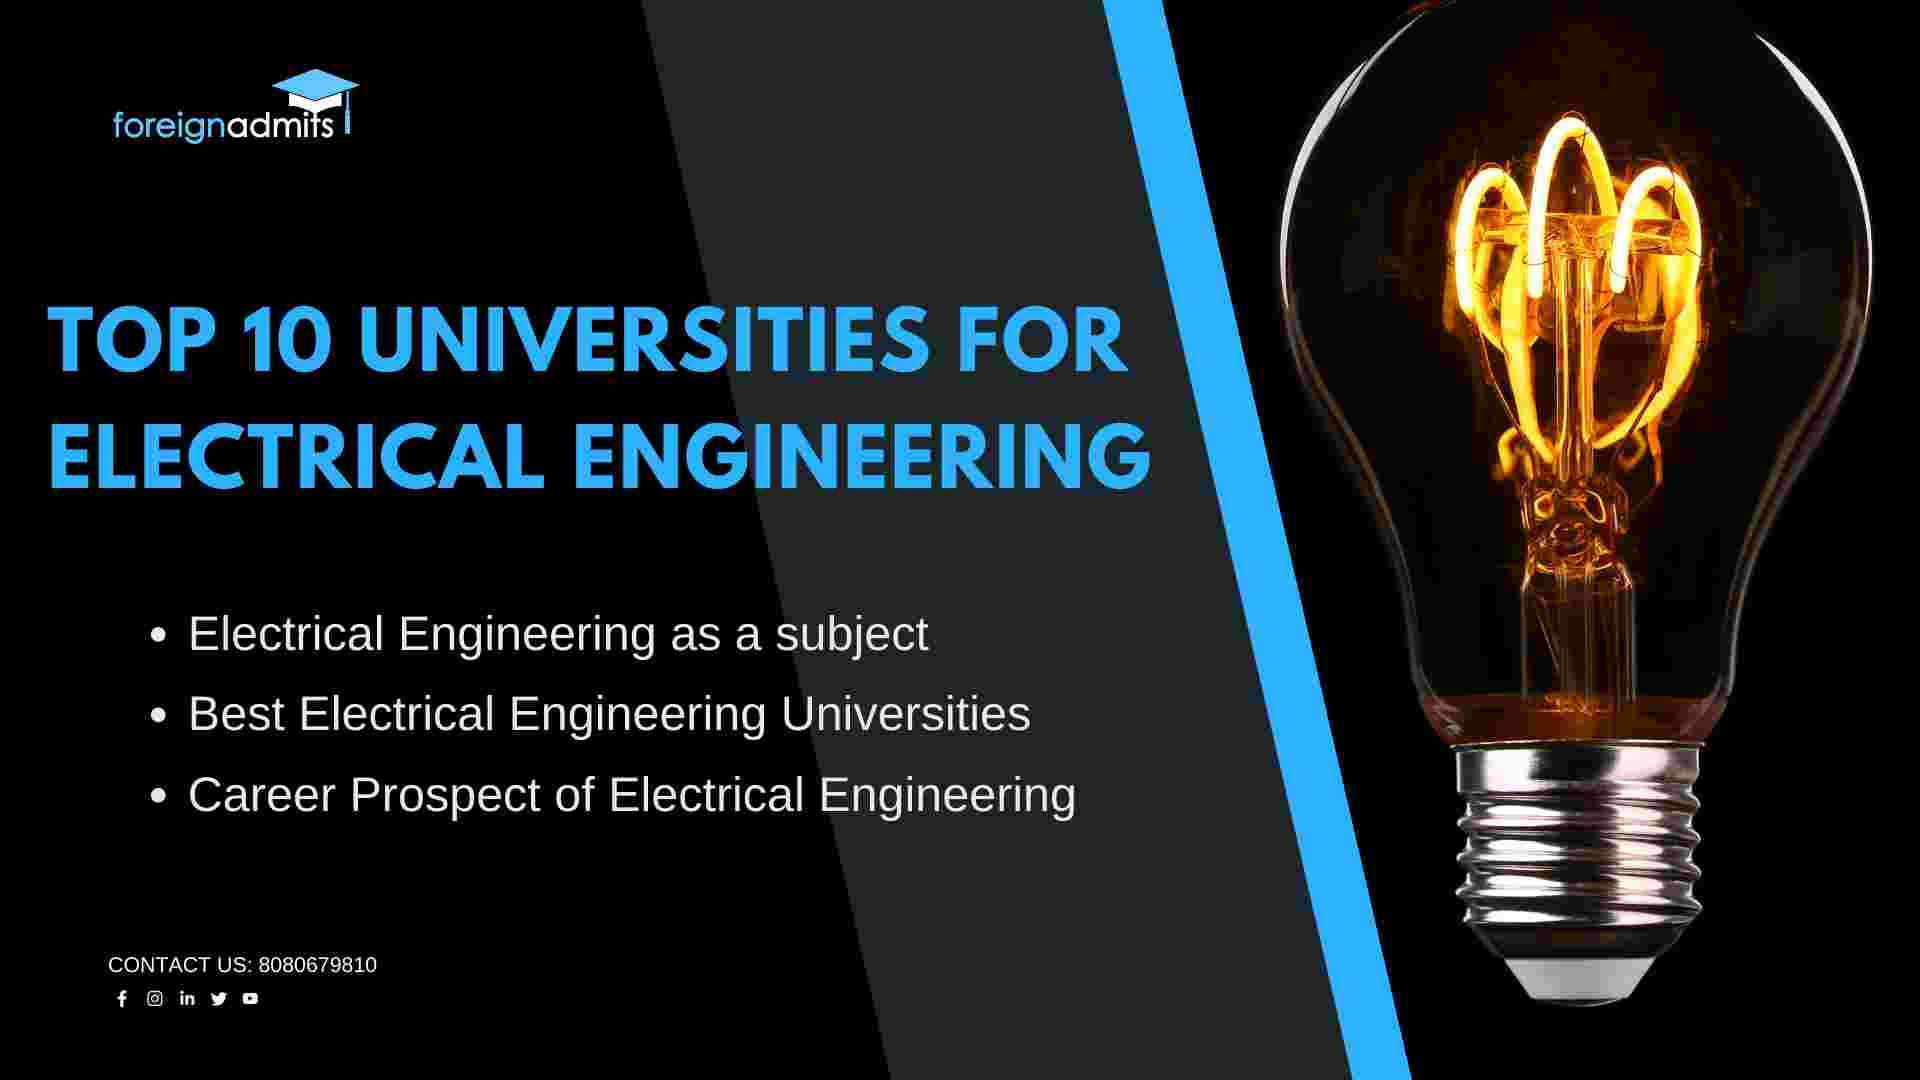 Universities for electrical engineering